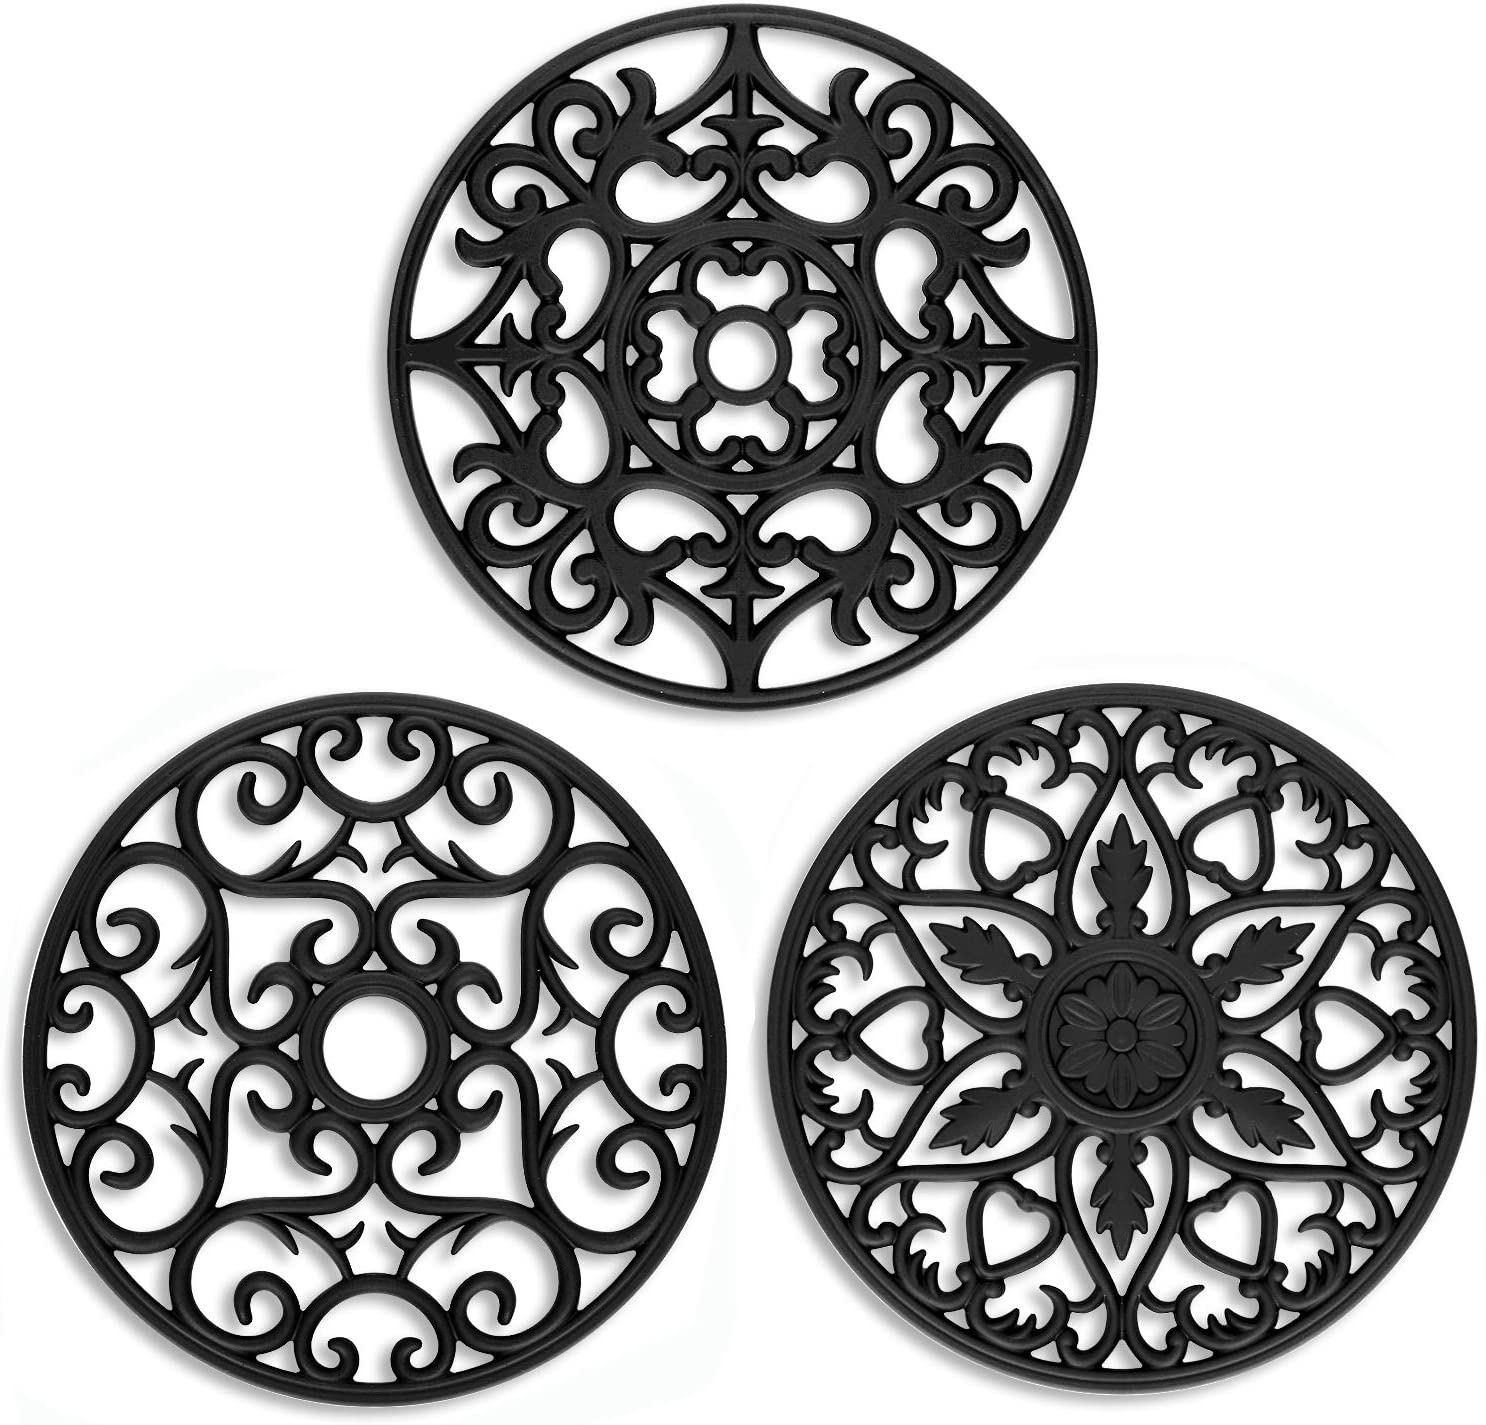 Flexible Non-Slip Smithcraft Silicone Trivets for Hot Pots and Pans,Hot Pads for Kitchen Counter,Pot Holders Pack 3 Black Heat Resistant Multi-Use Intricately Carved Mats